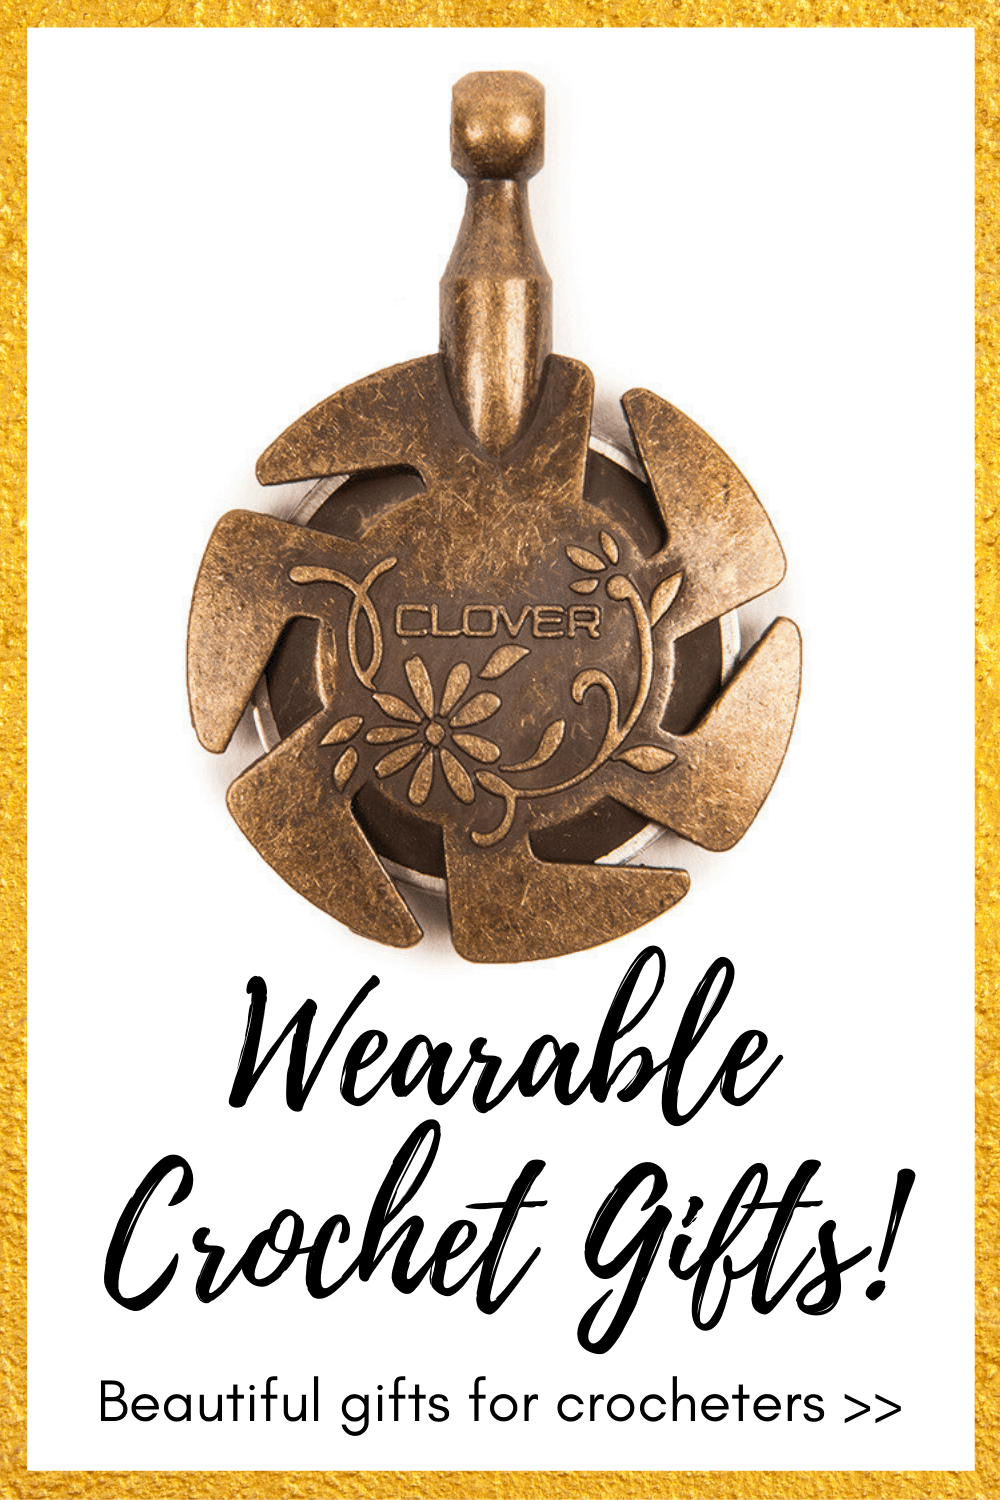 A yarn cutter pendant is included in this list of the best gifts for crocheters